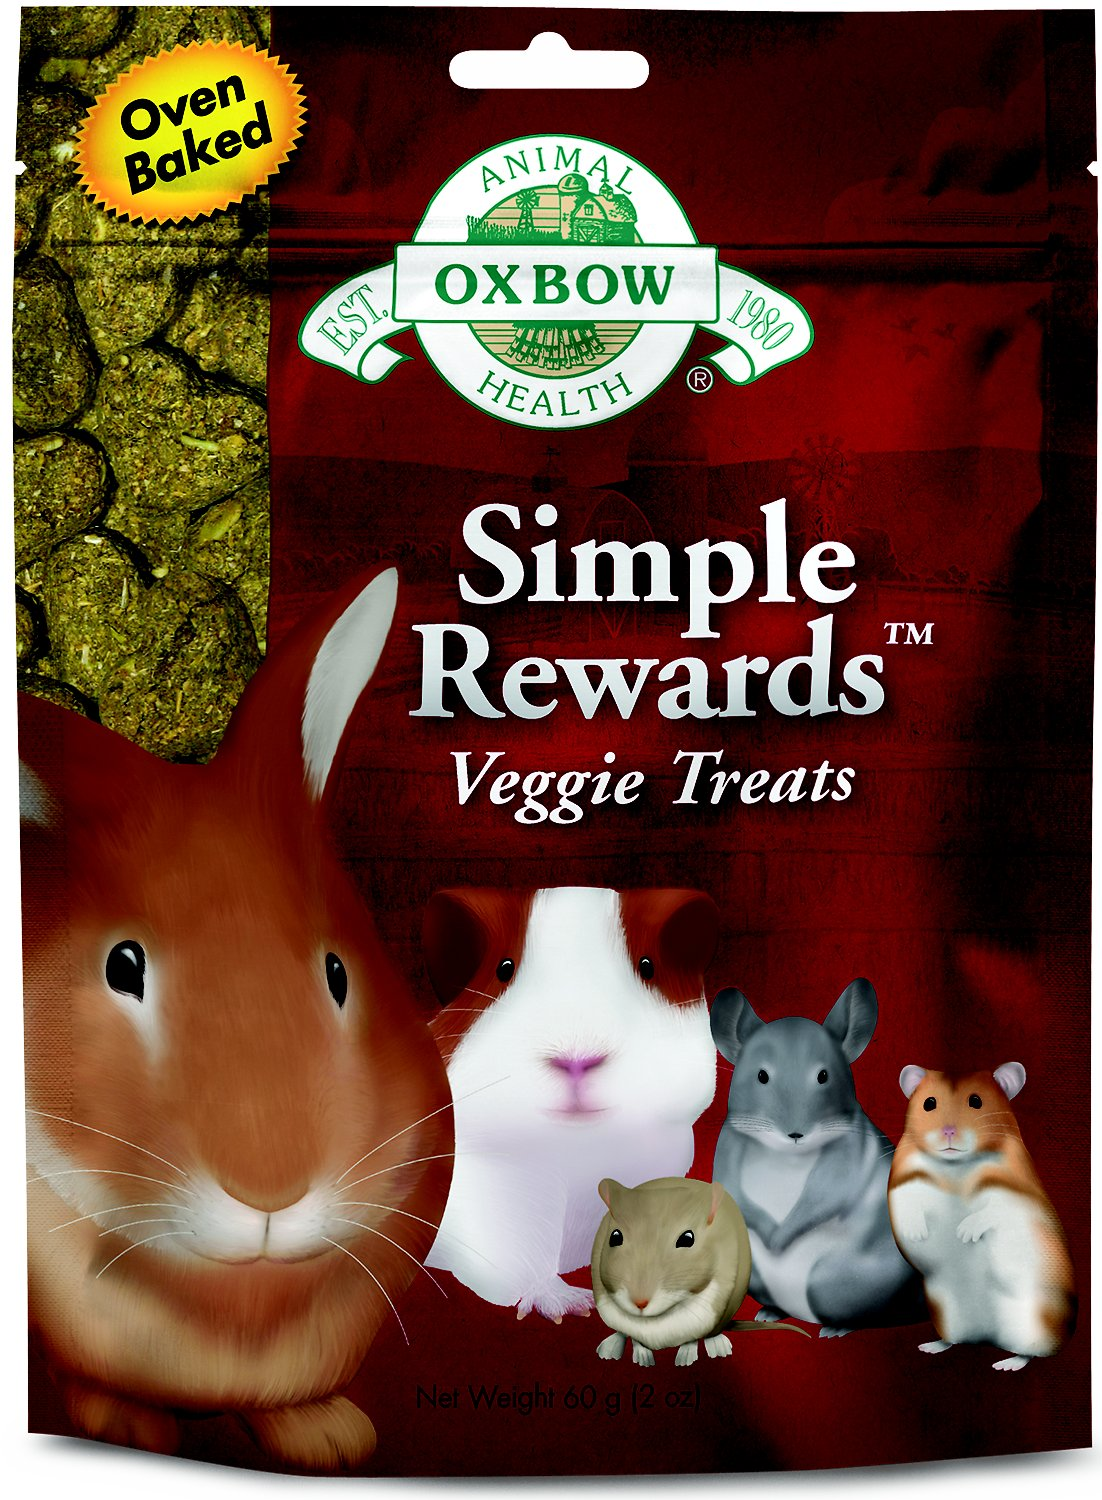 Oxbow Simple Rewards Oven Baked Veggie Small Animal Treats, 2-oz bag